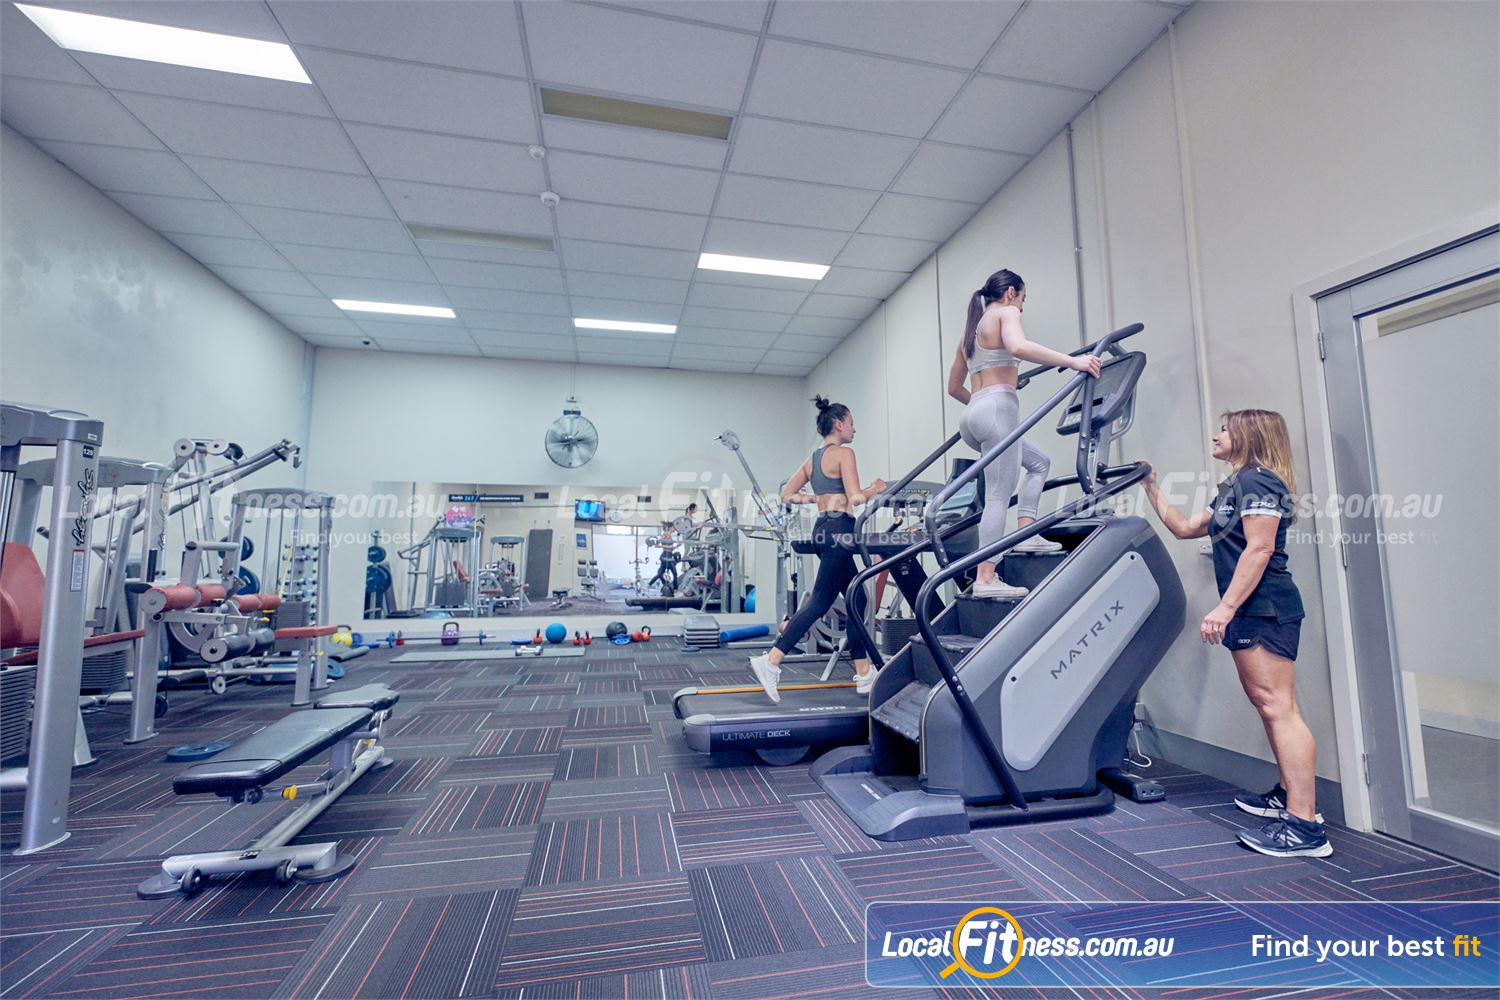 Goodlife Health Clubs Near Braeside Our Dingley gym team can tailor a women's focus program for you.